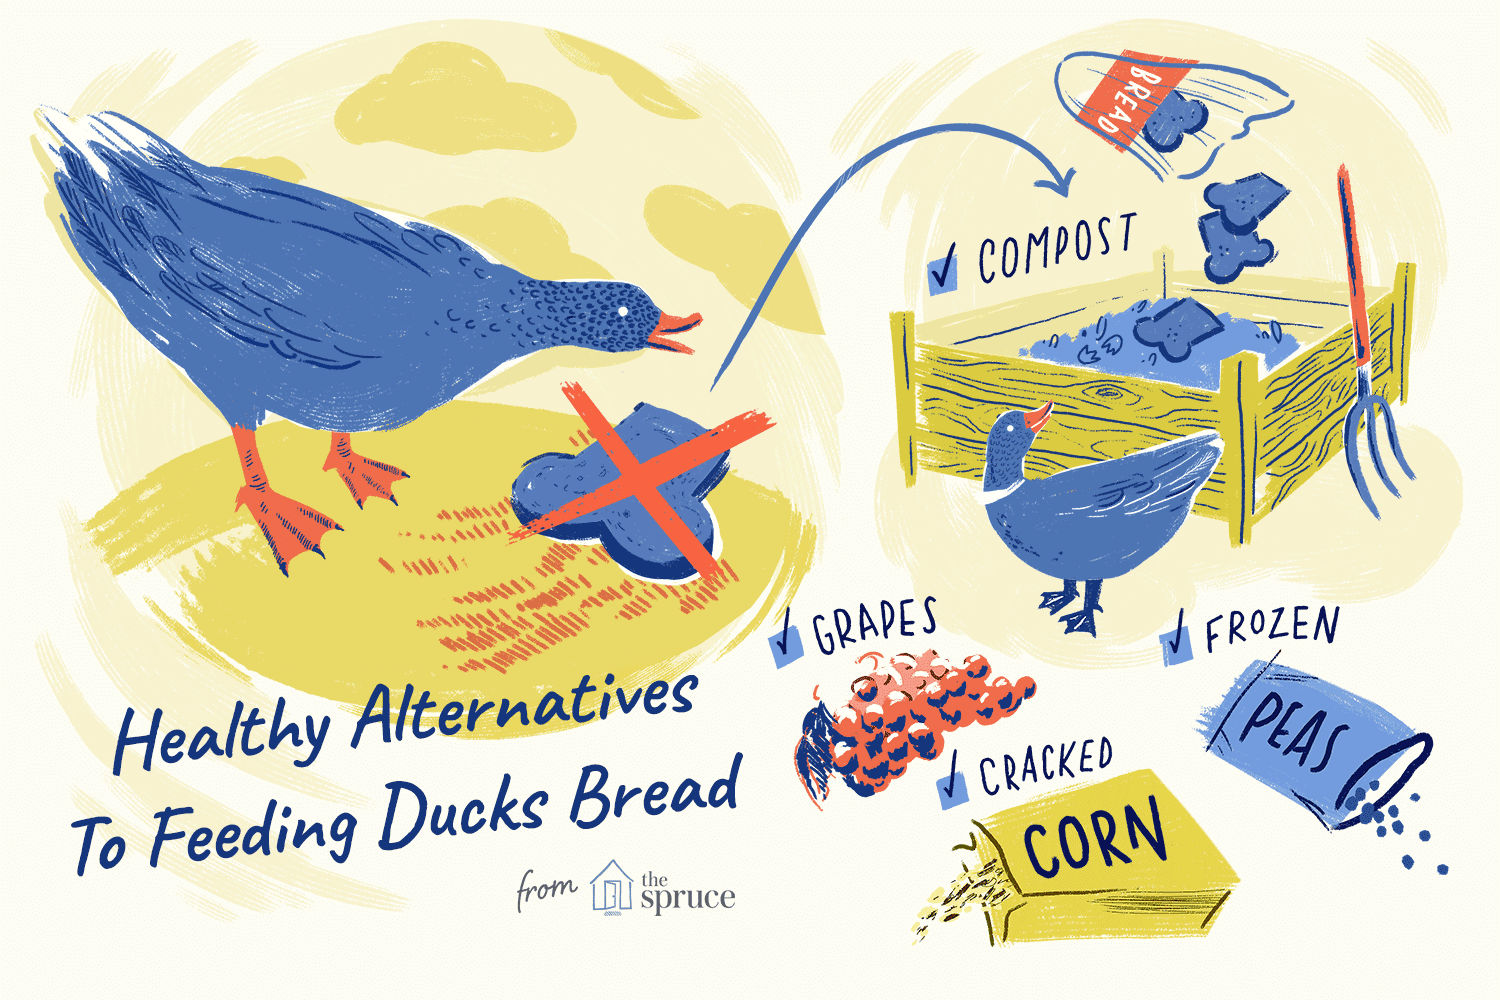 Why Bread Is Bad For Ducks